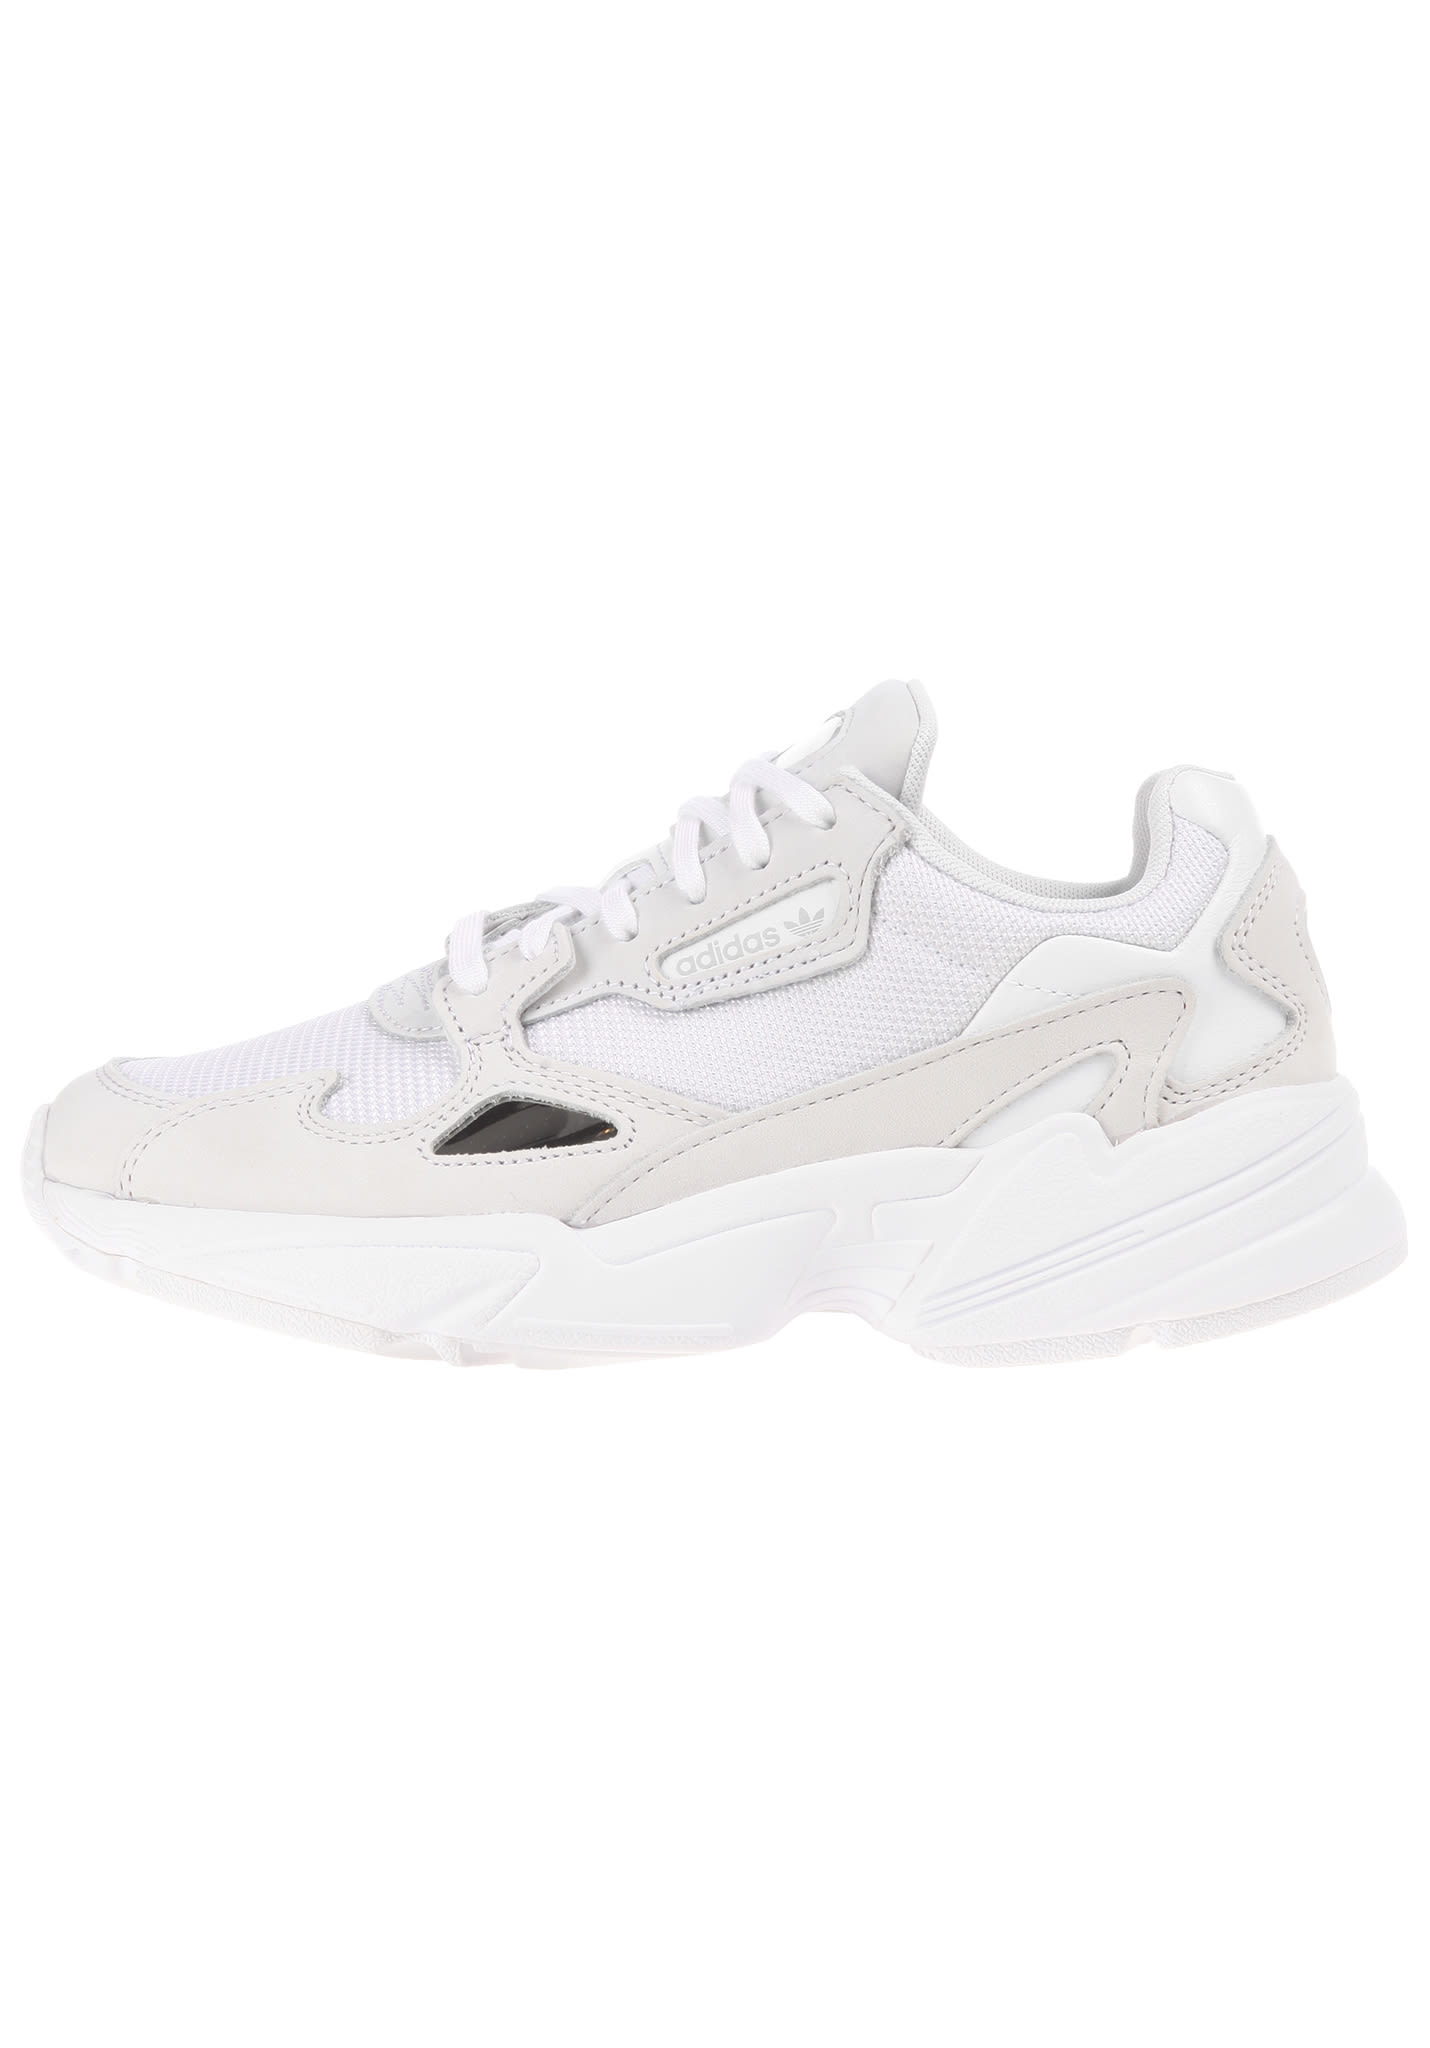 new product 8a3ae 6d15b ADIDAS ORIGINALS Falcon - Sneakers for Women - White - Plane